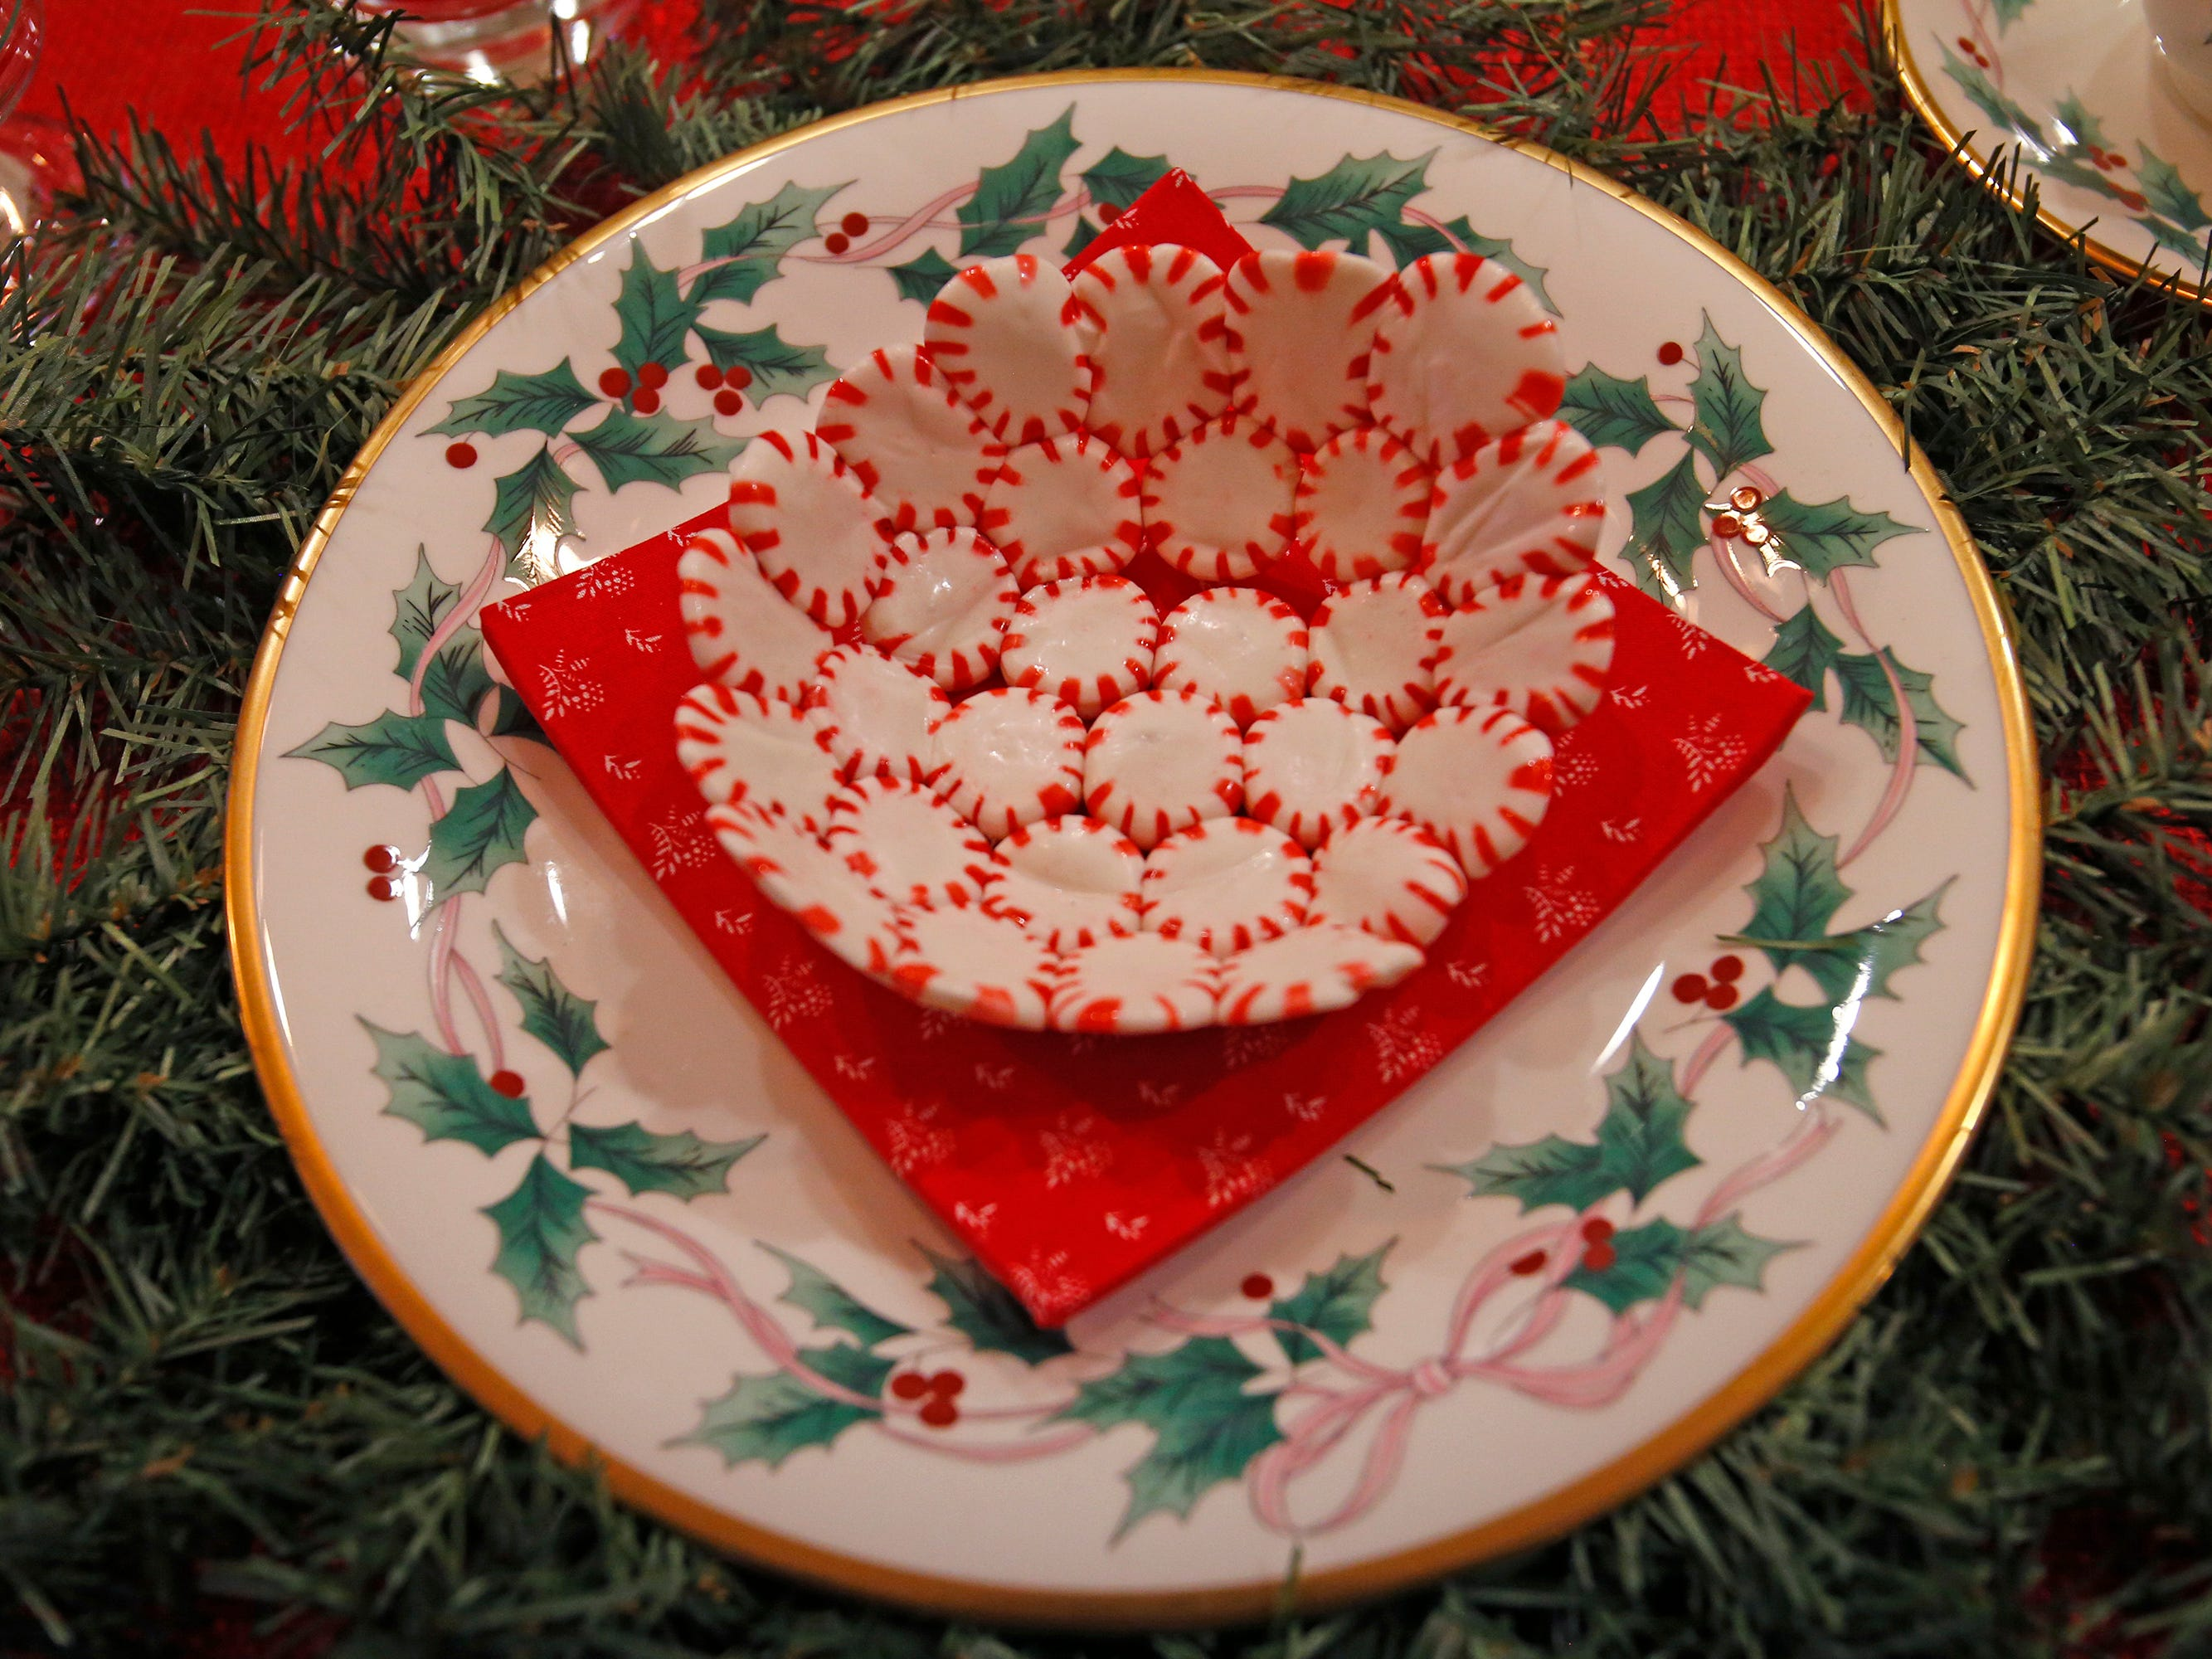 Peppermints pressed and fused into a bowl shape on display at the 26th annual Christmas Fantasy House with 18 rooms decorated by more than 16 area decorators to benefit the Ronald McDonald House Charities Eastern Wisconsin. The Fantasy house will be open 10 a.m. to 8 p.m. on Nov. 9, and 10 a.m. to 6 p.m. on Nov. 10 and 11. Parking and shuttle to the House is at Ridgewood Baptist Church, 2720 Lilly Road, Brookfield. Tickets are $20 at the door.